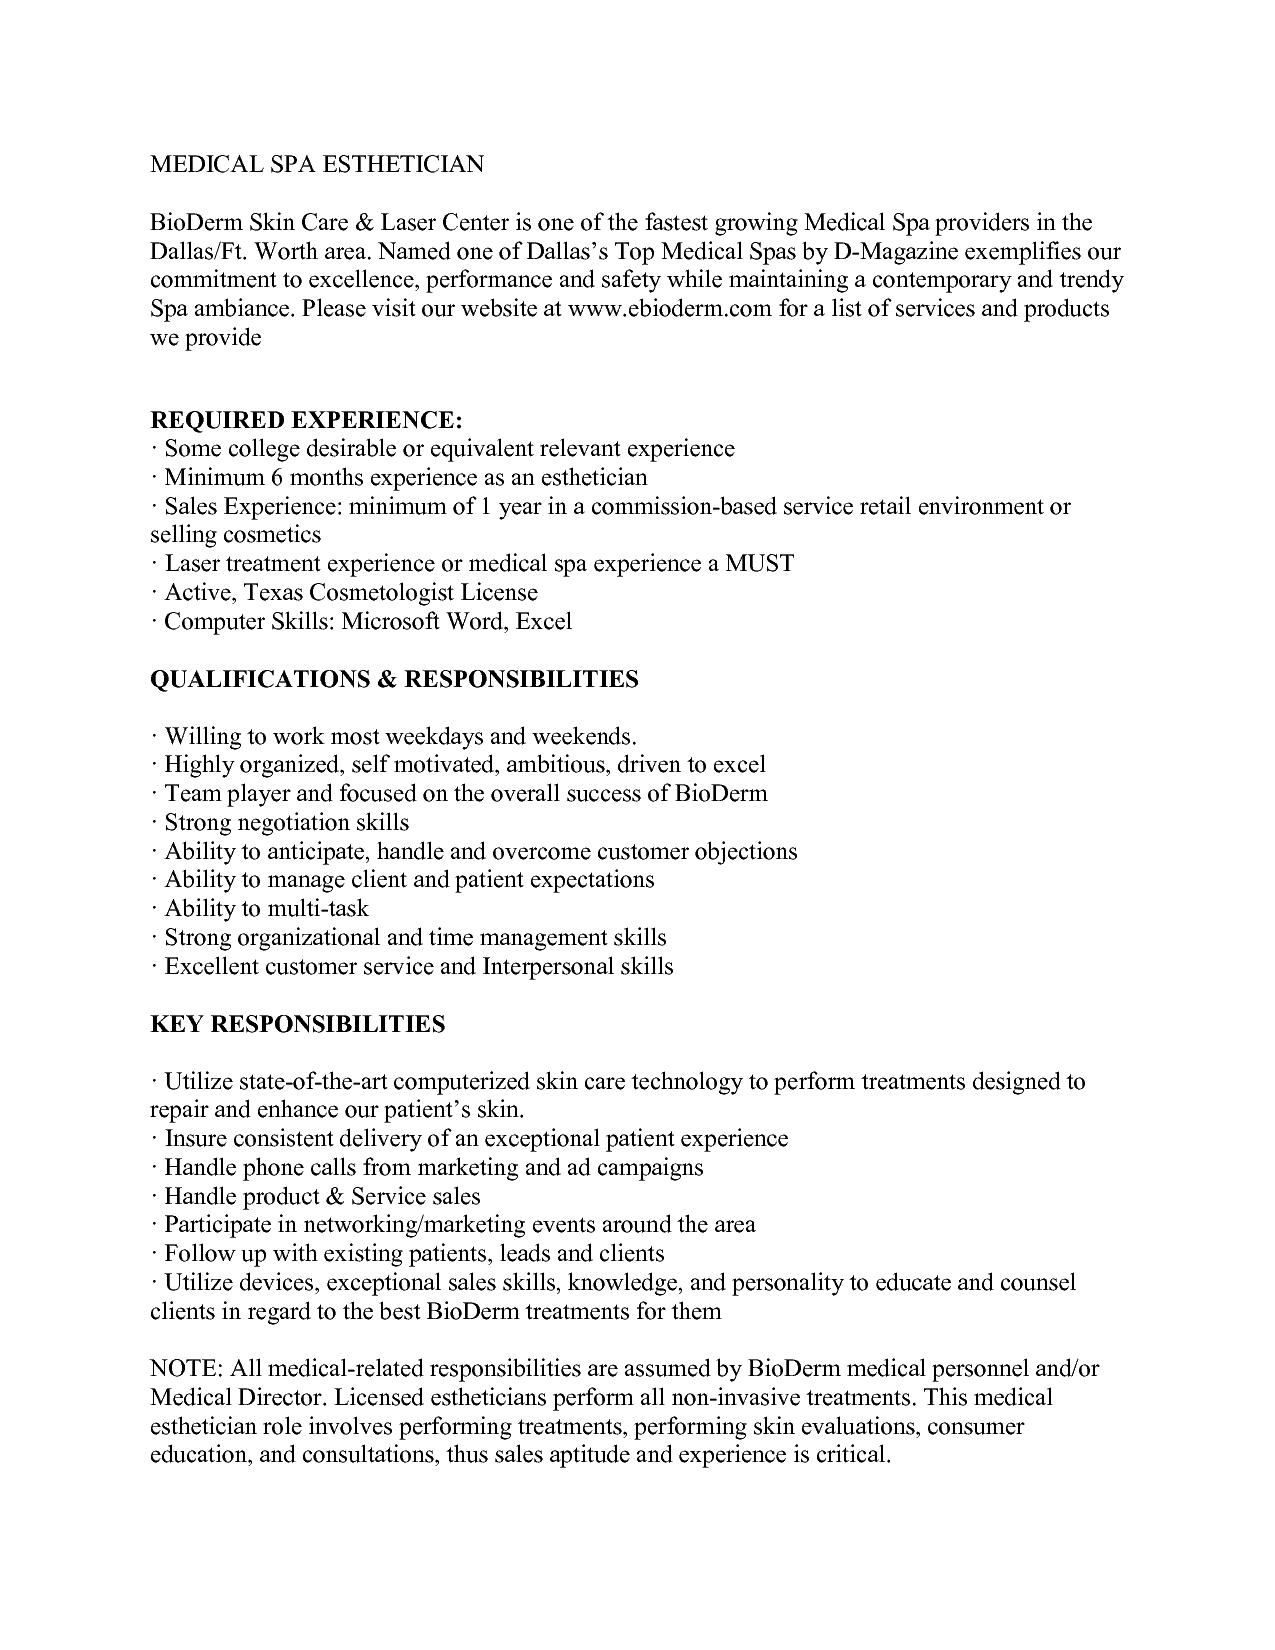 medical esthetician resume sample httpwwwjobresumewebsitemedical